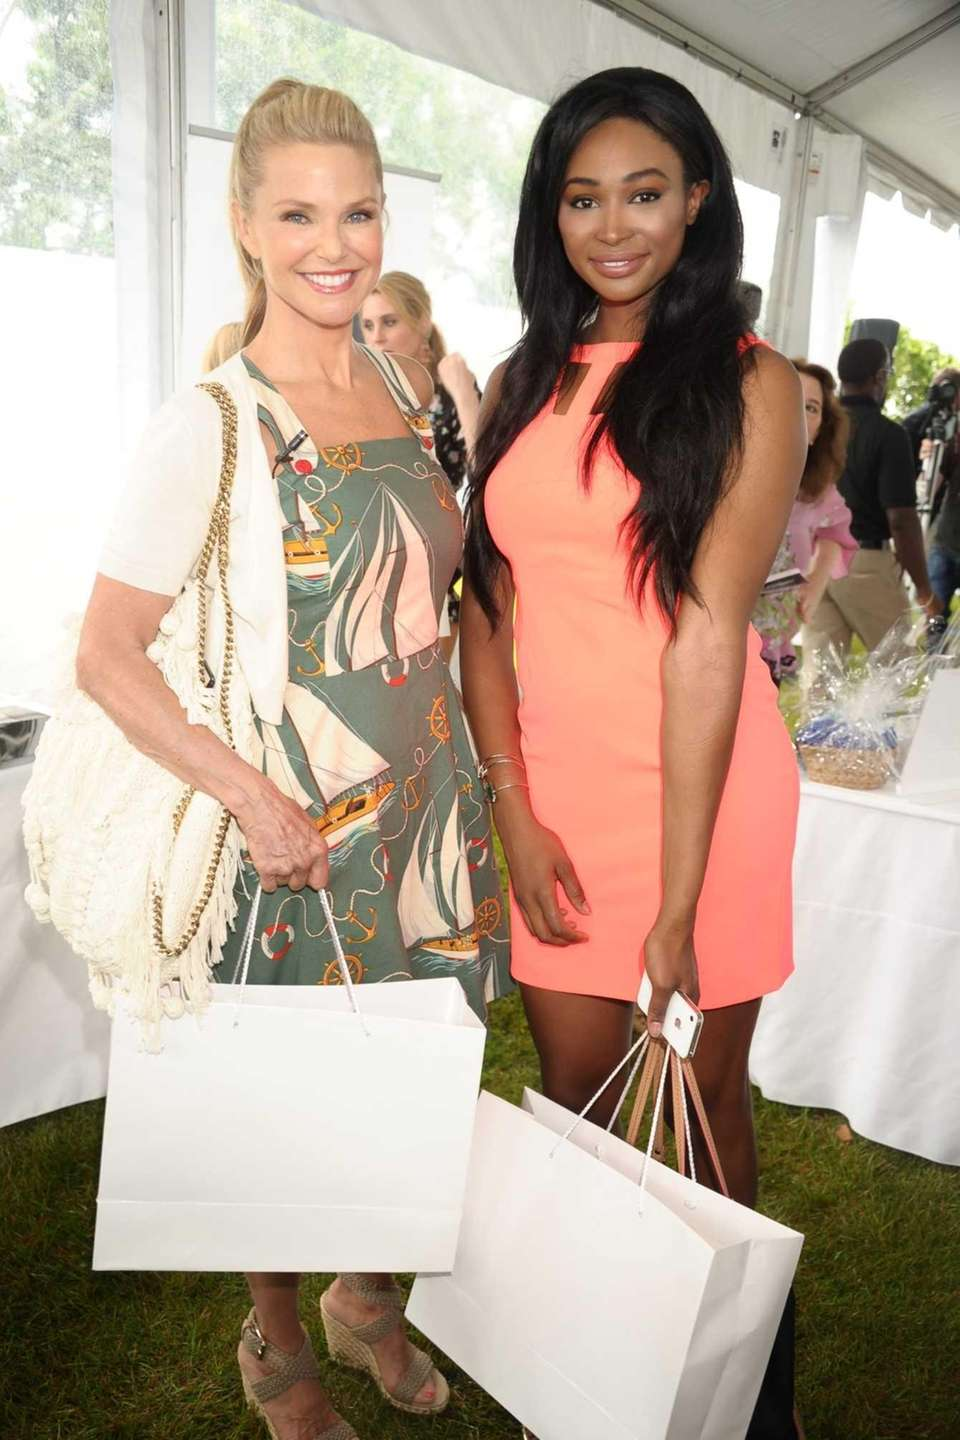 Christie Brinkley and Miss USA 2012 Nana Meriwether